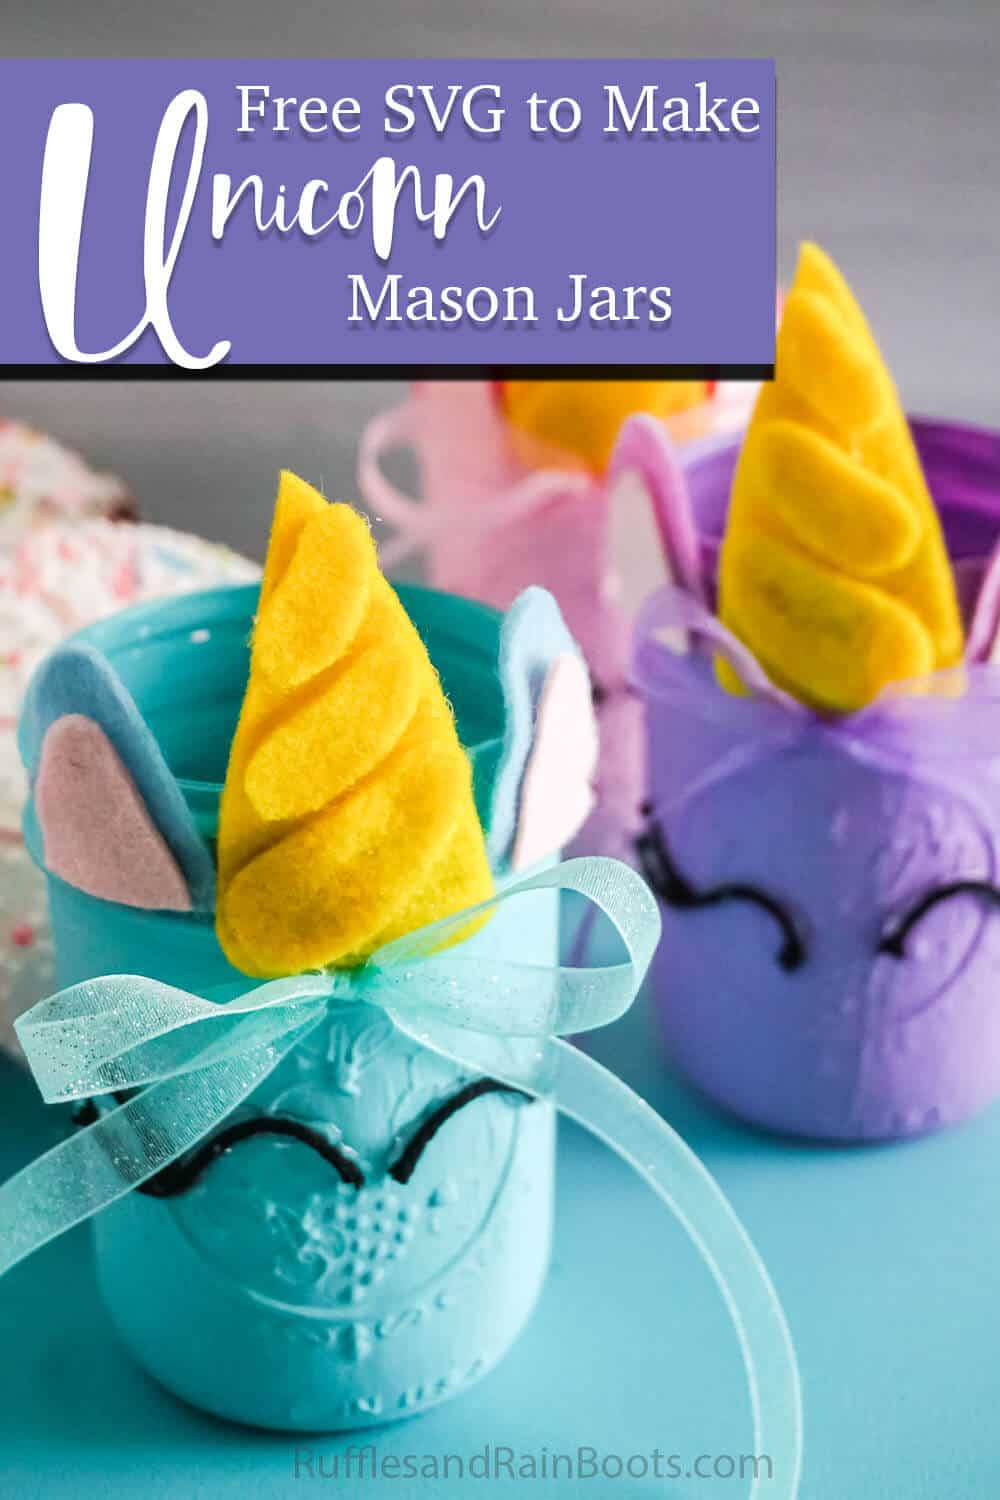 three unicorn jars on a blue table with text which reads free svgs to make unicorn mason jars